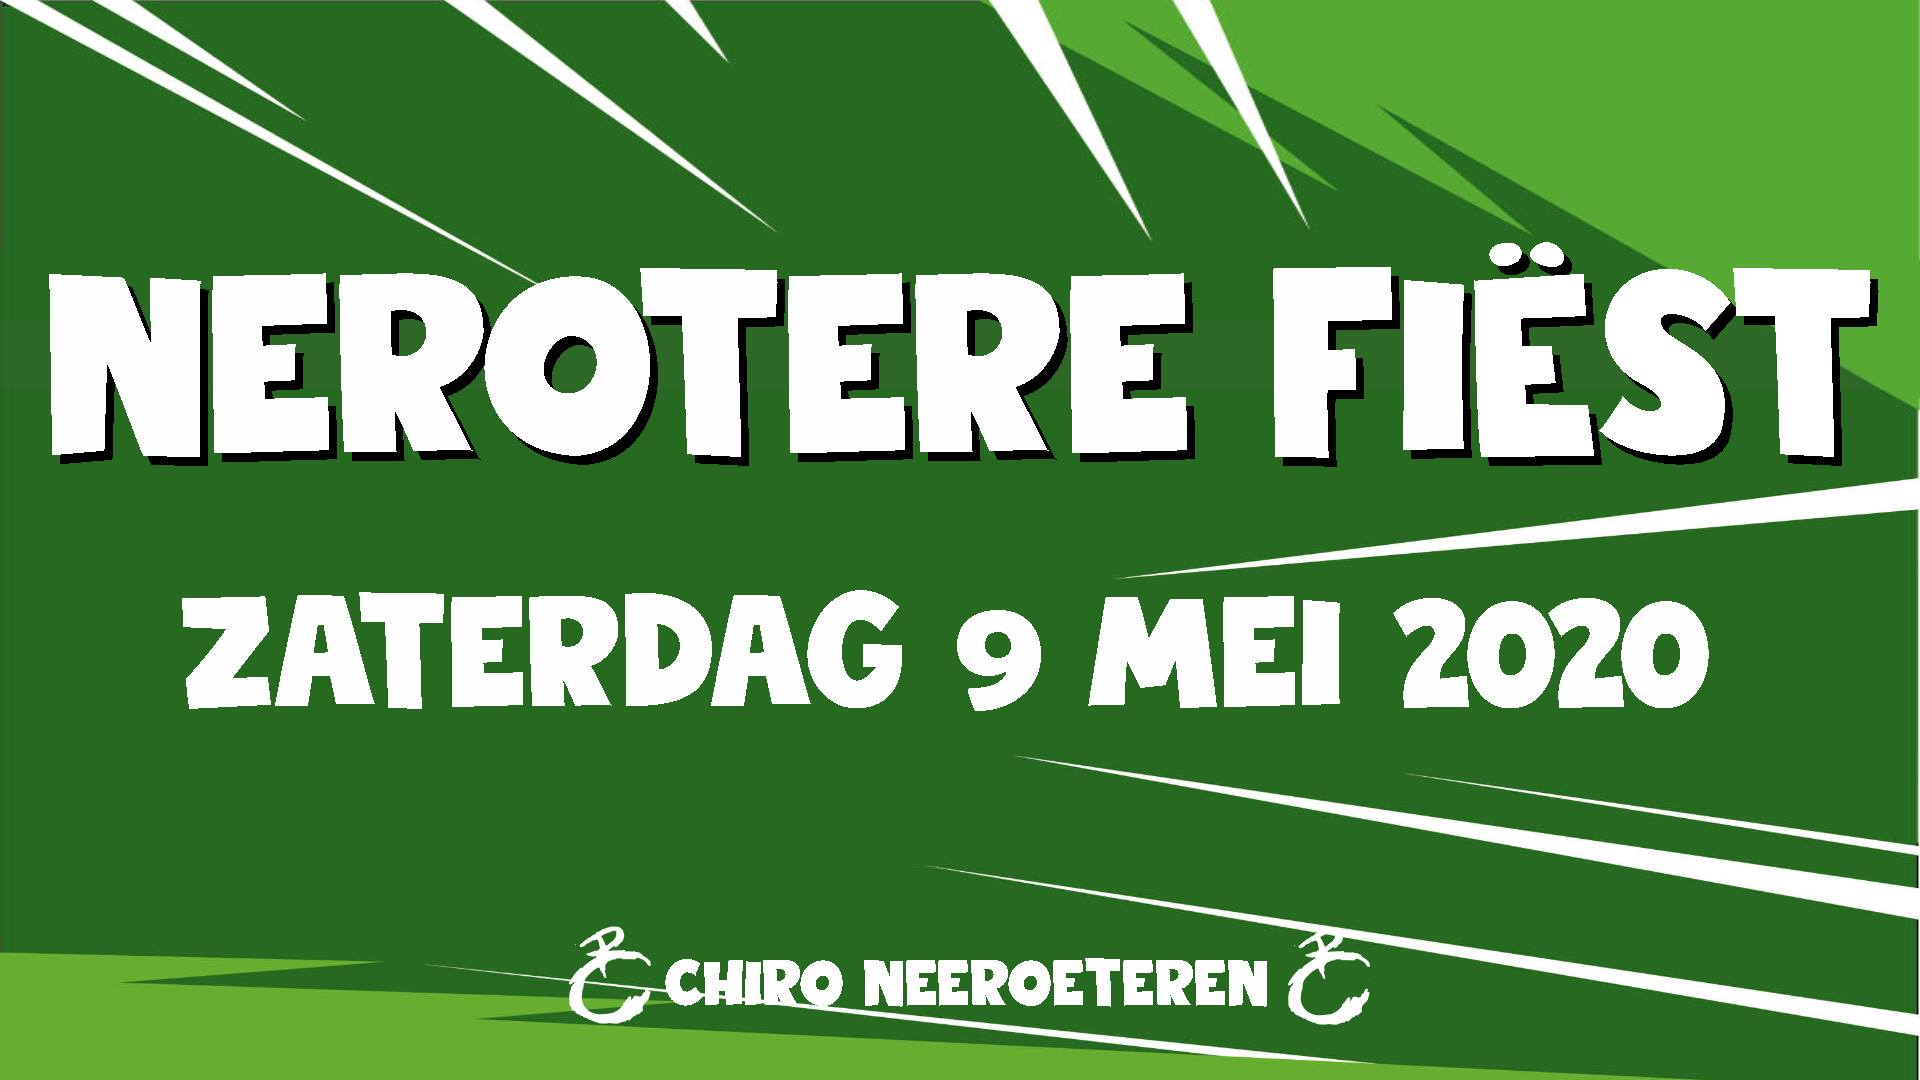 Nerotere Fiëst affiche op 10/06/2020